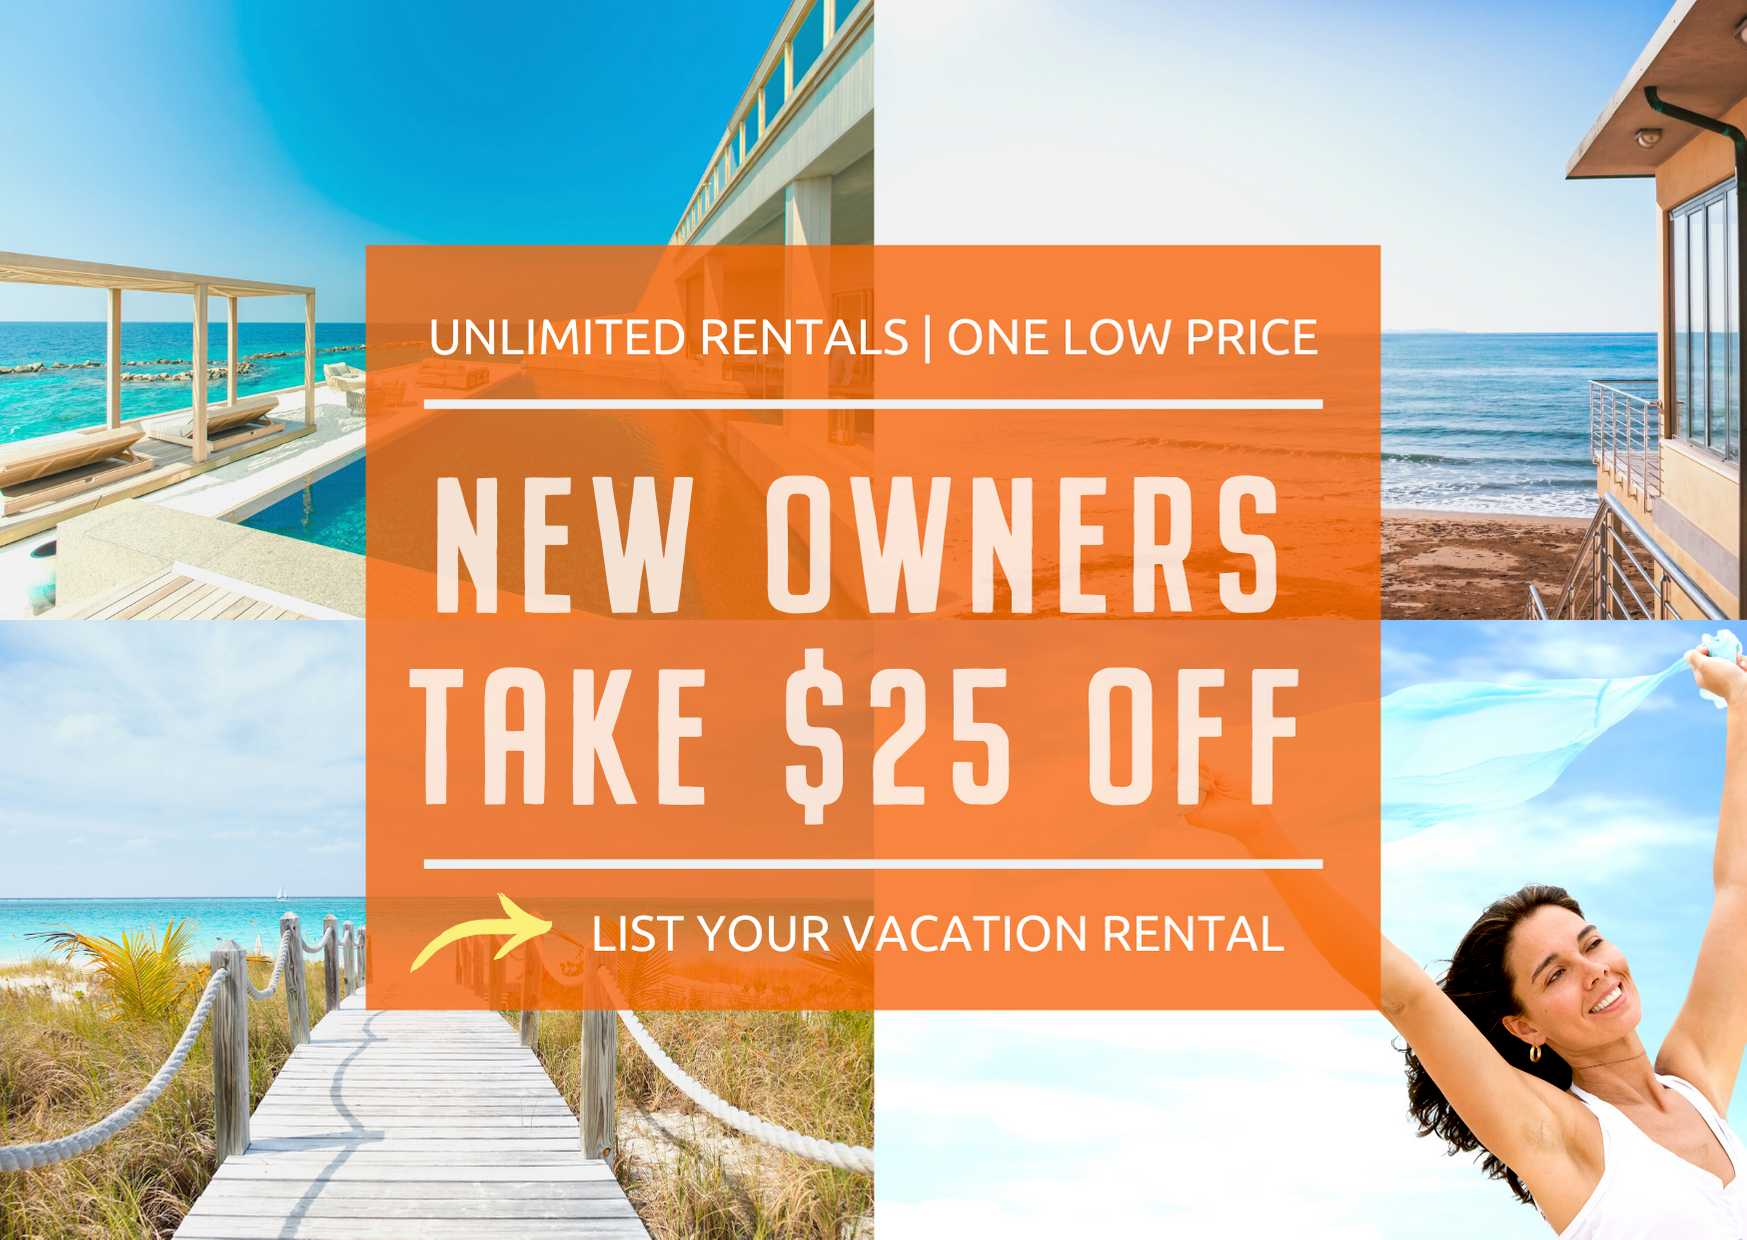 Unlimited Rentals One Low Price